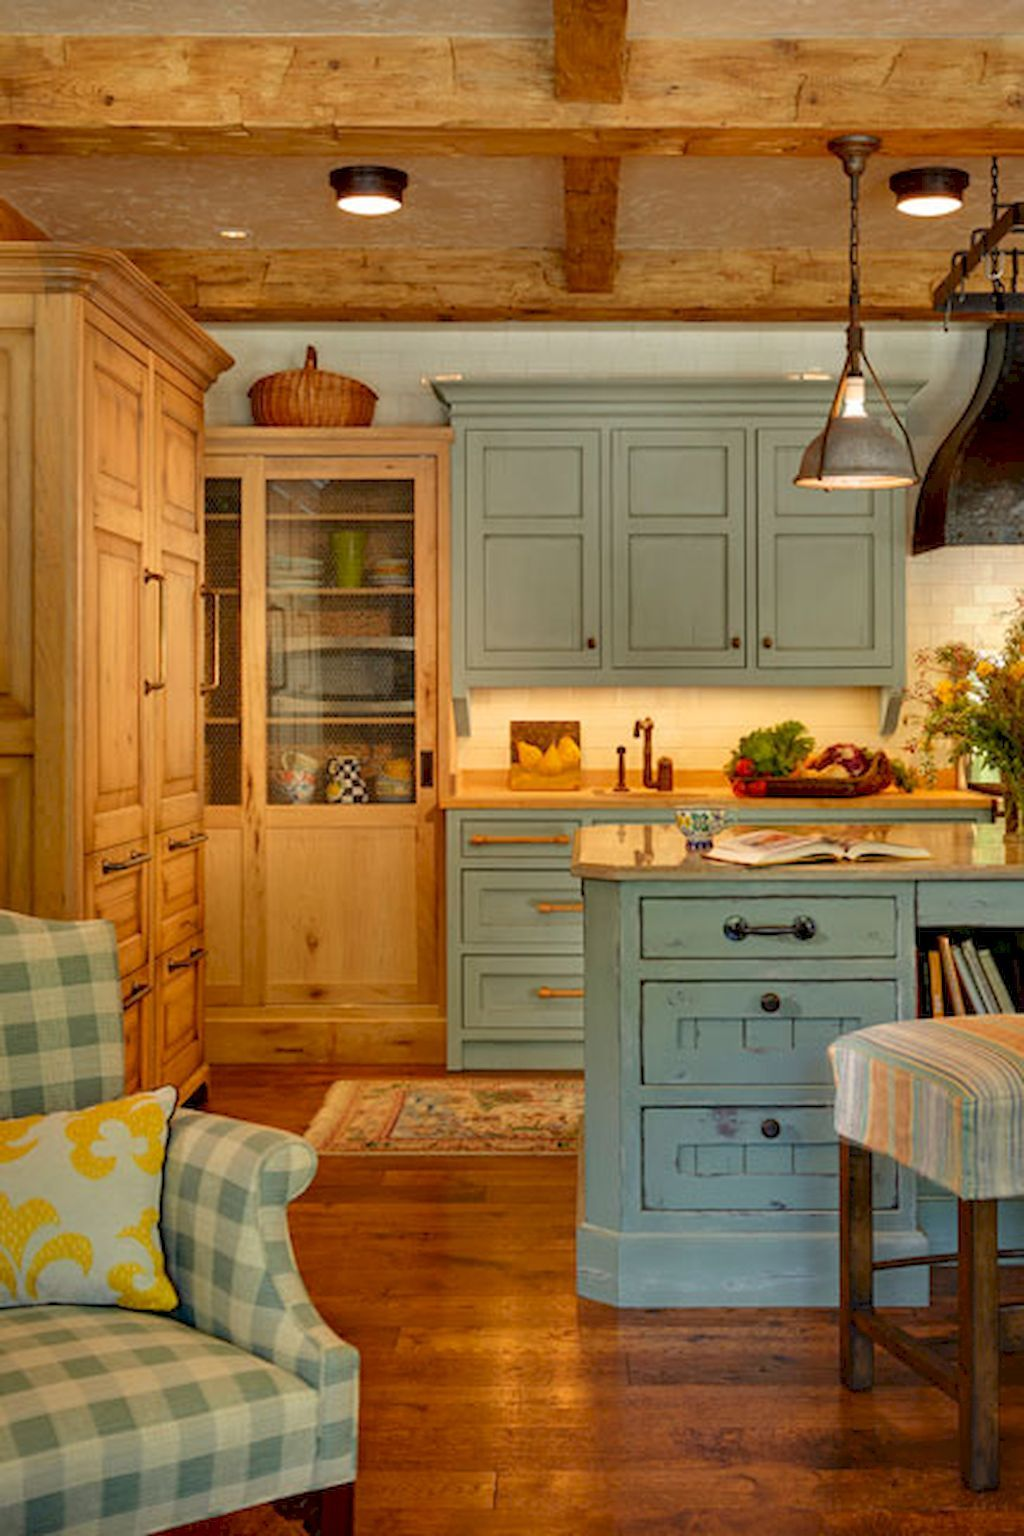 rustic kitchen cabinets farmhouse style ideas rustic kitchen